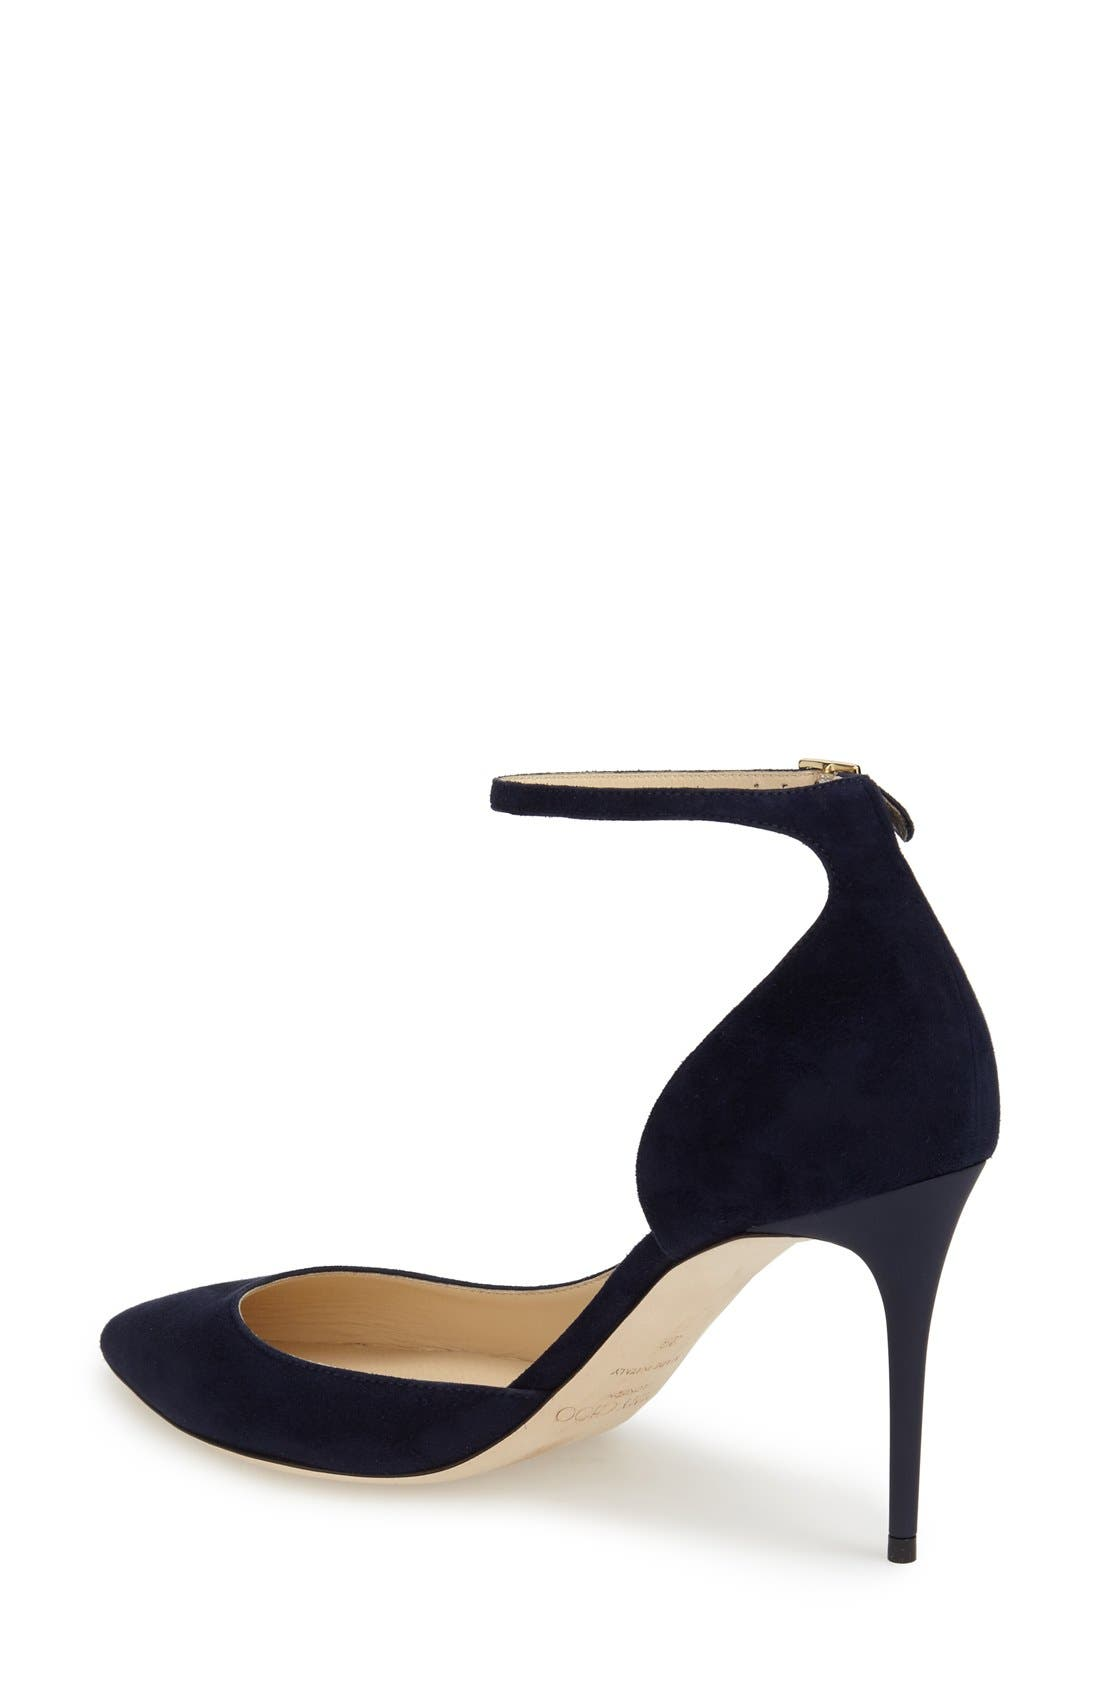 'Lucy' Half d'Orsay Pointy Toe Pump,                             Alternate thumbnail 9, color,